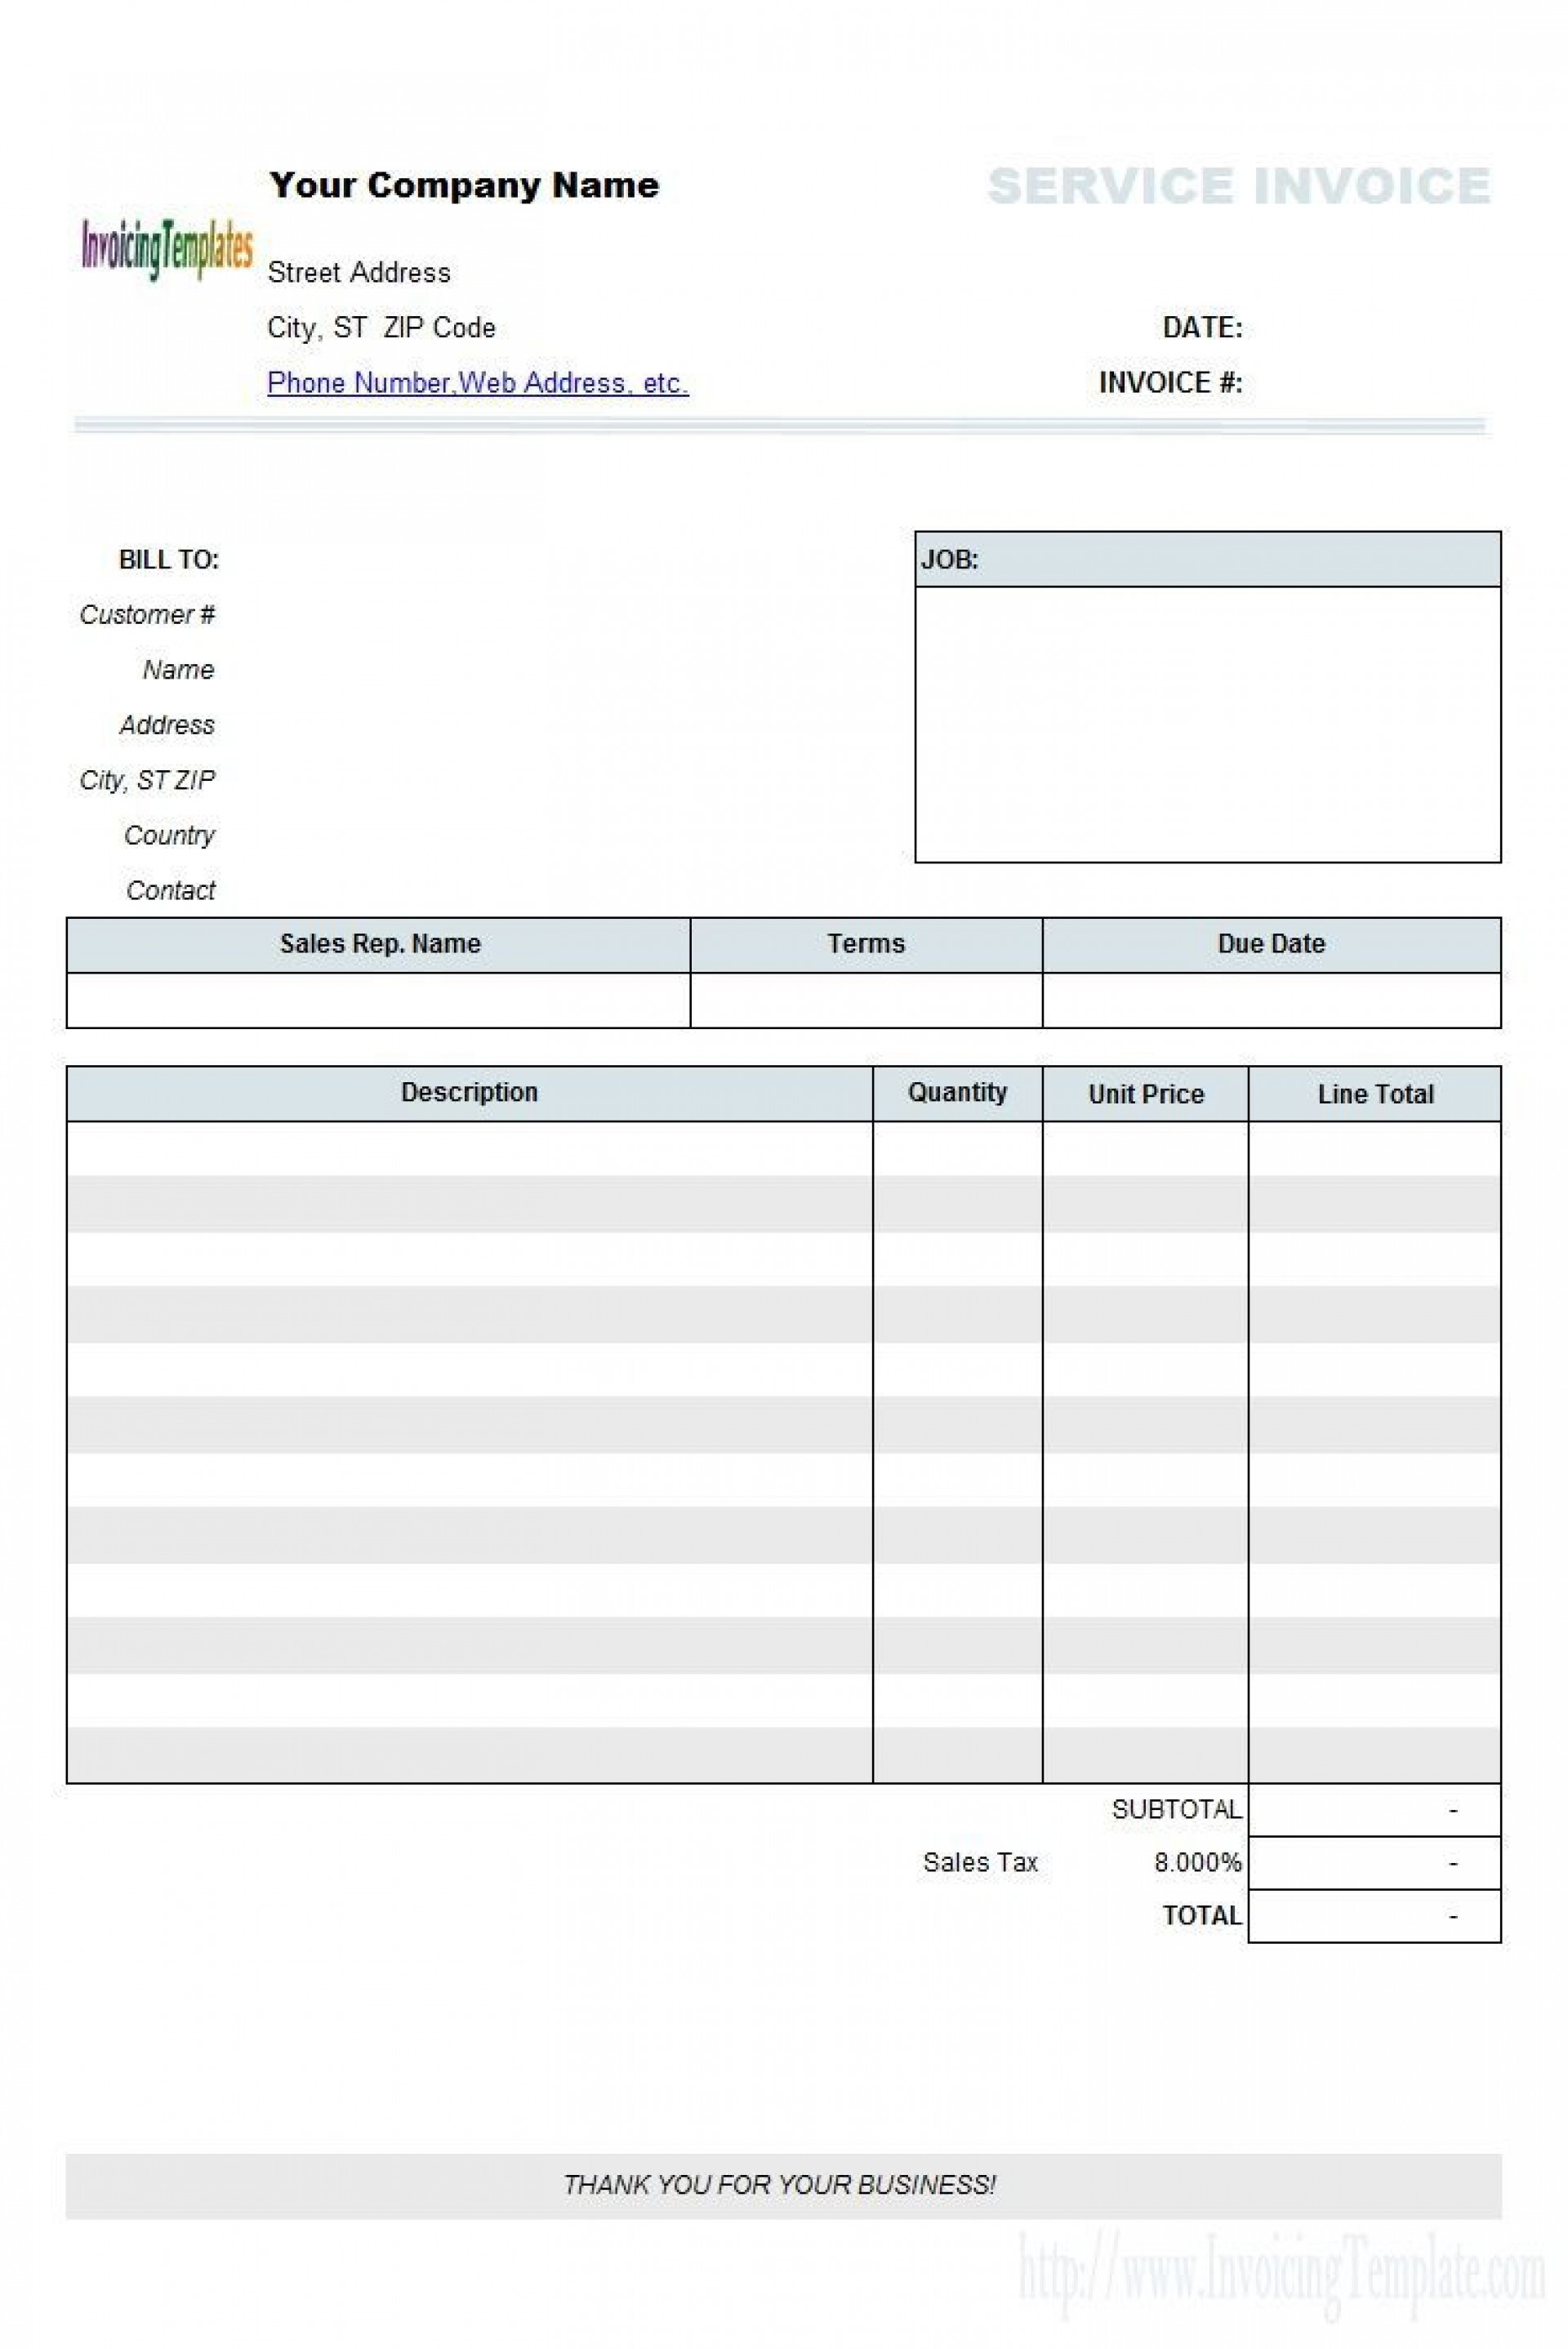 003 Impressive Free Invoice Template Excel High Resolution  Simple Proforma Delivery Receipt Tax South Africa1920